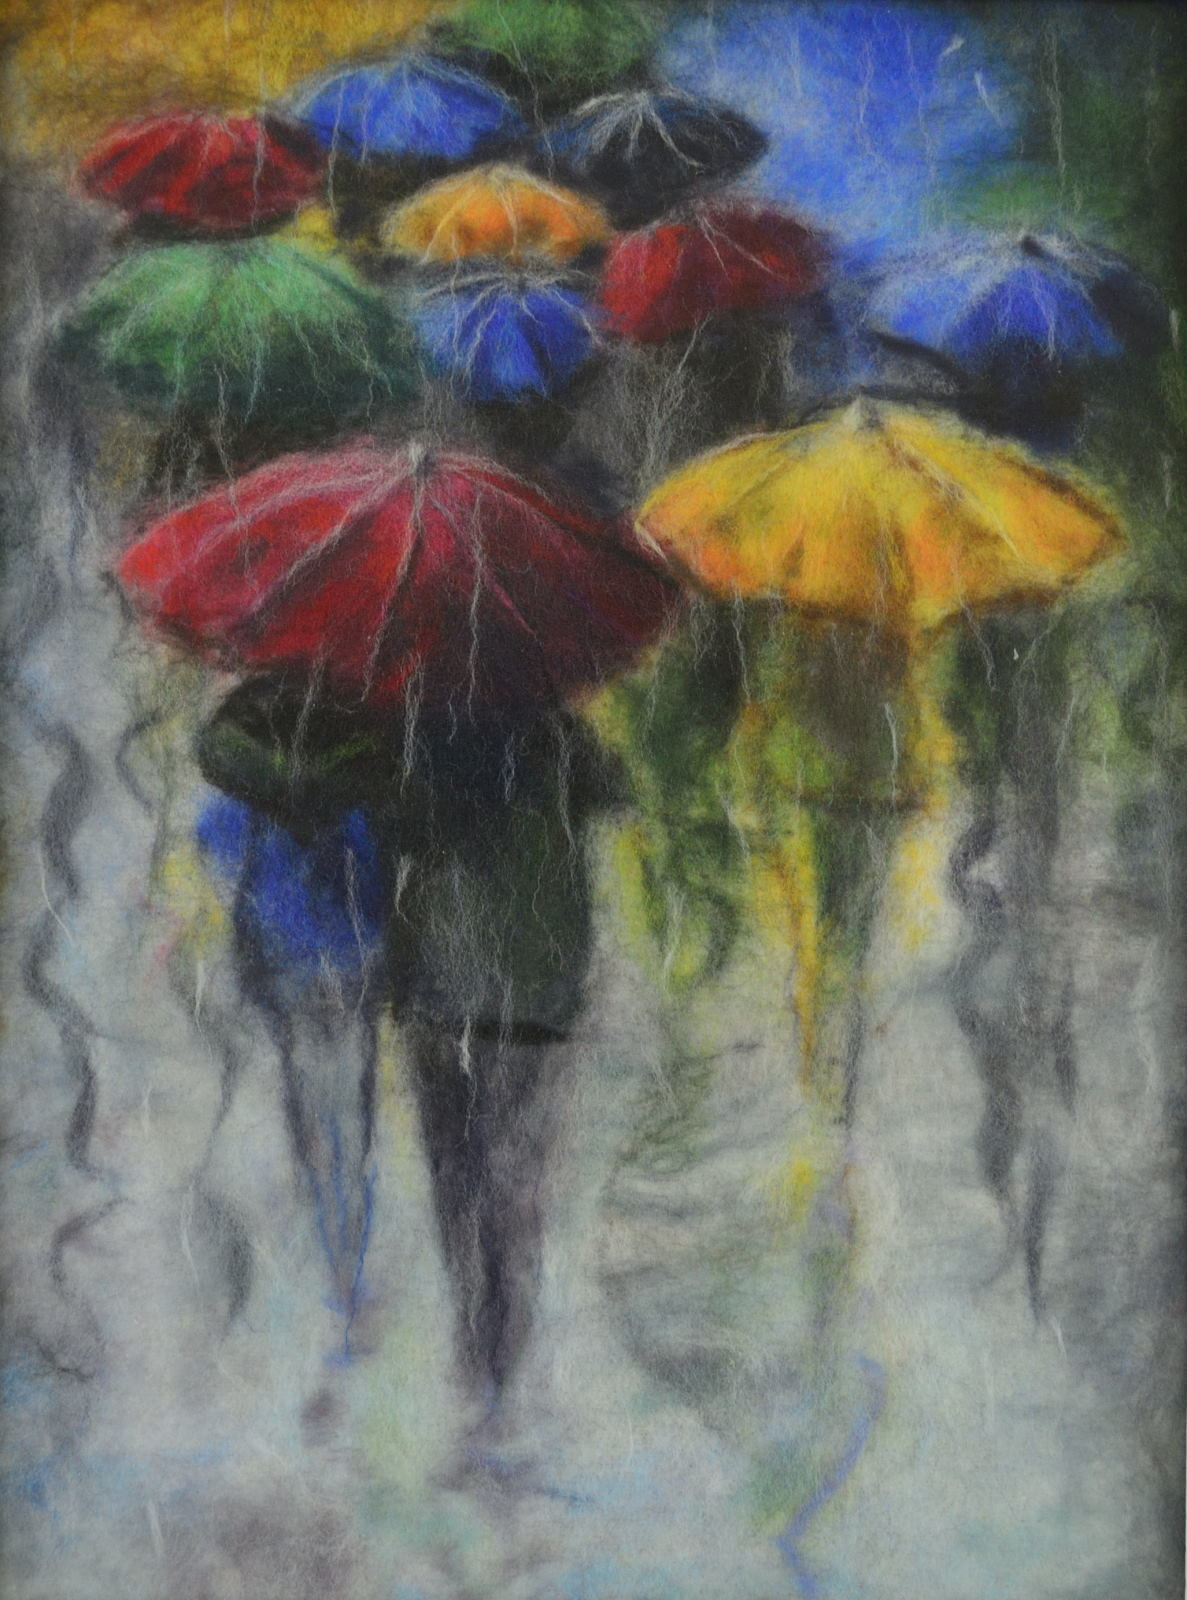 People with umbrellas. Rainy day. Wool Art Gallery. Picture made of fine merino wool